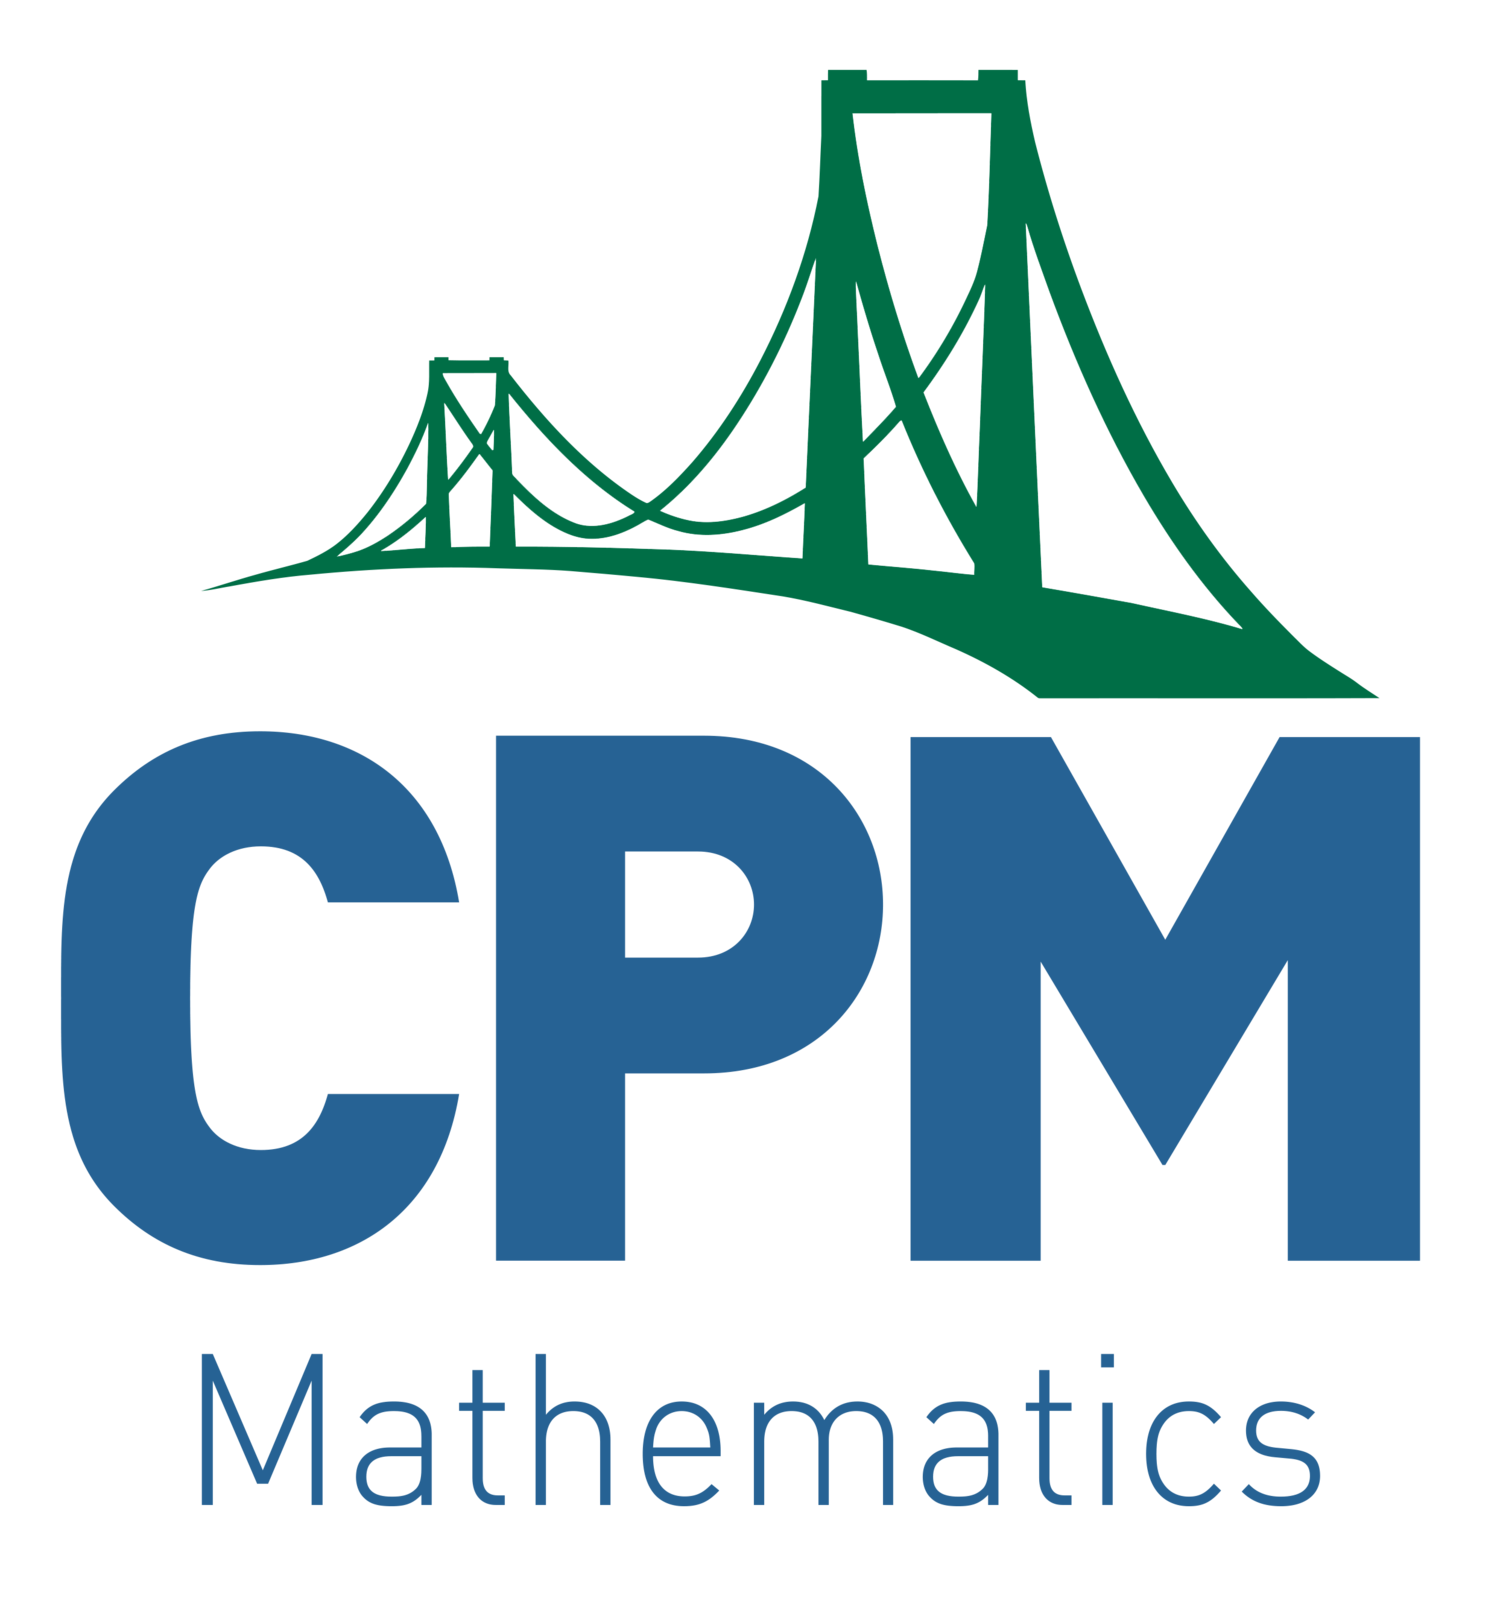 CPM Mathematics